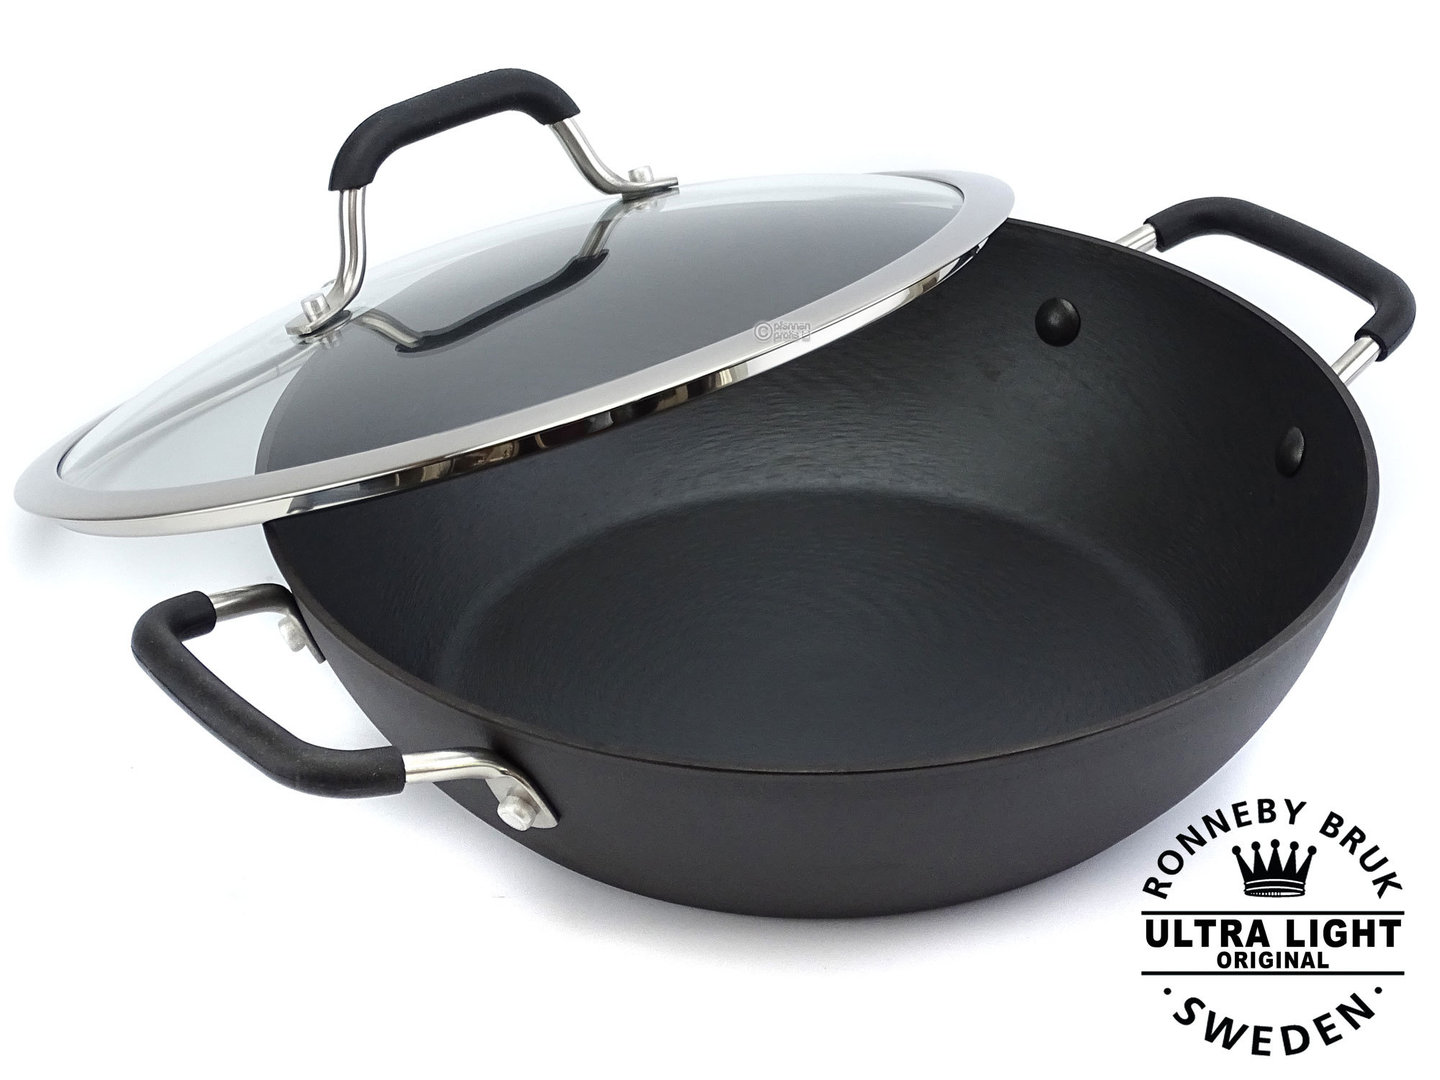 RONNEBY BRUK pre-seasoned cast iron sauté pan ULTRA LIGHT 28 cm with glass lid